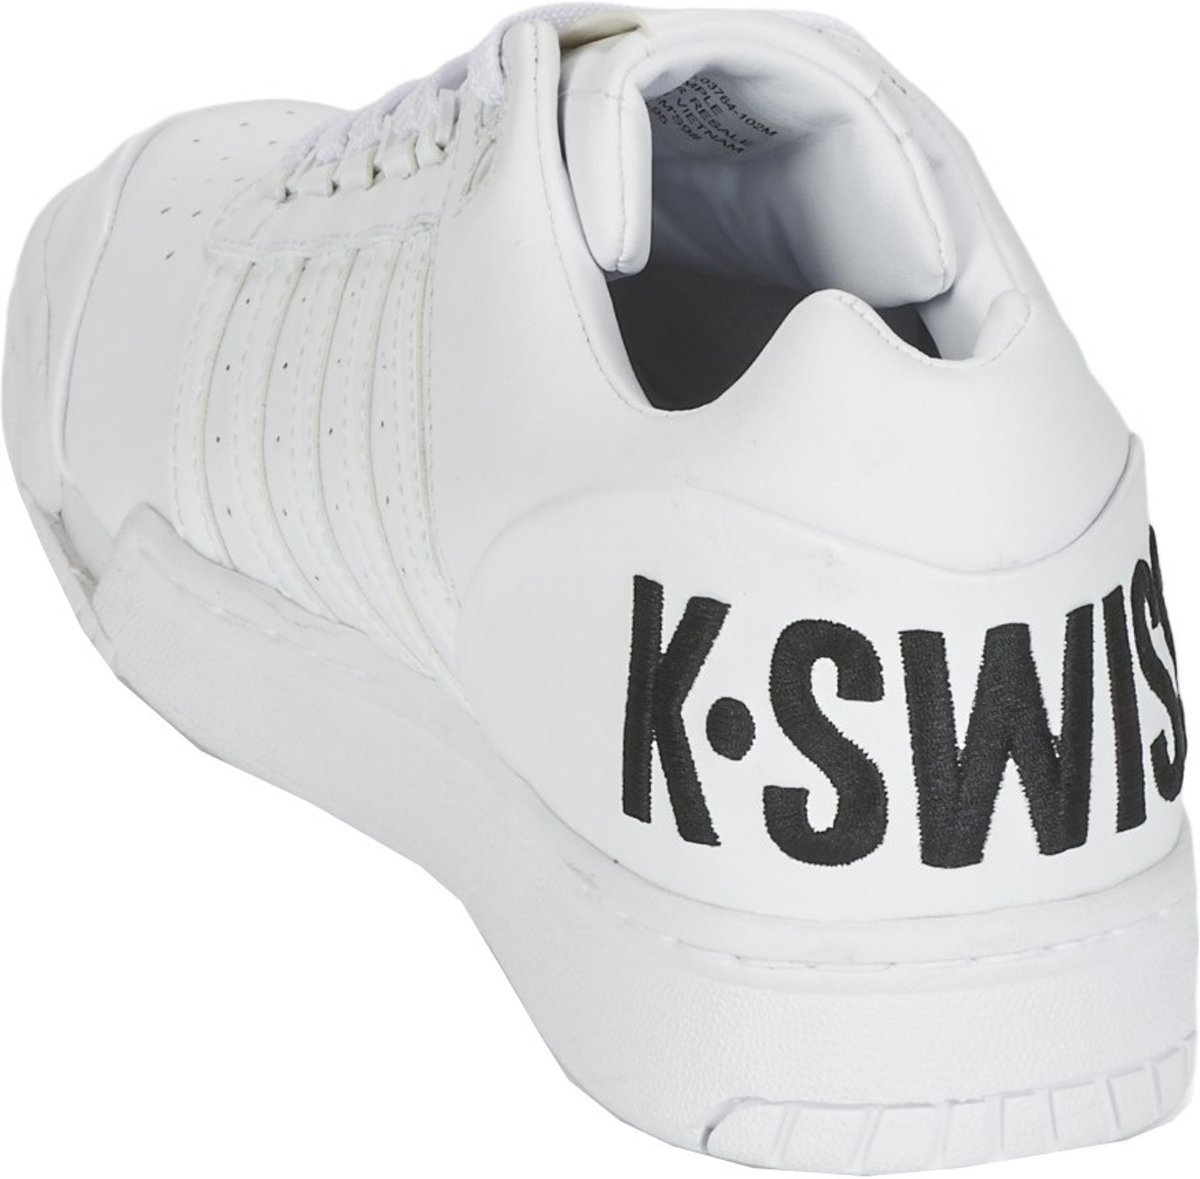 K Chaussures De Sport Suisse Hommes Gstaad Blanc Taille 39.5 ntLnnUkGXy